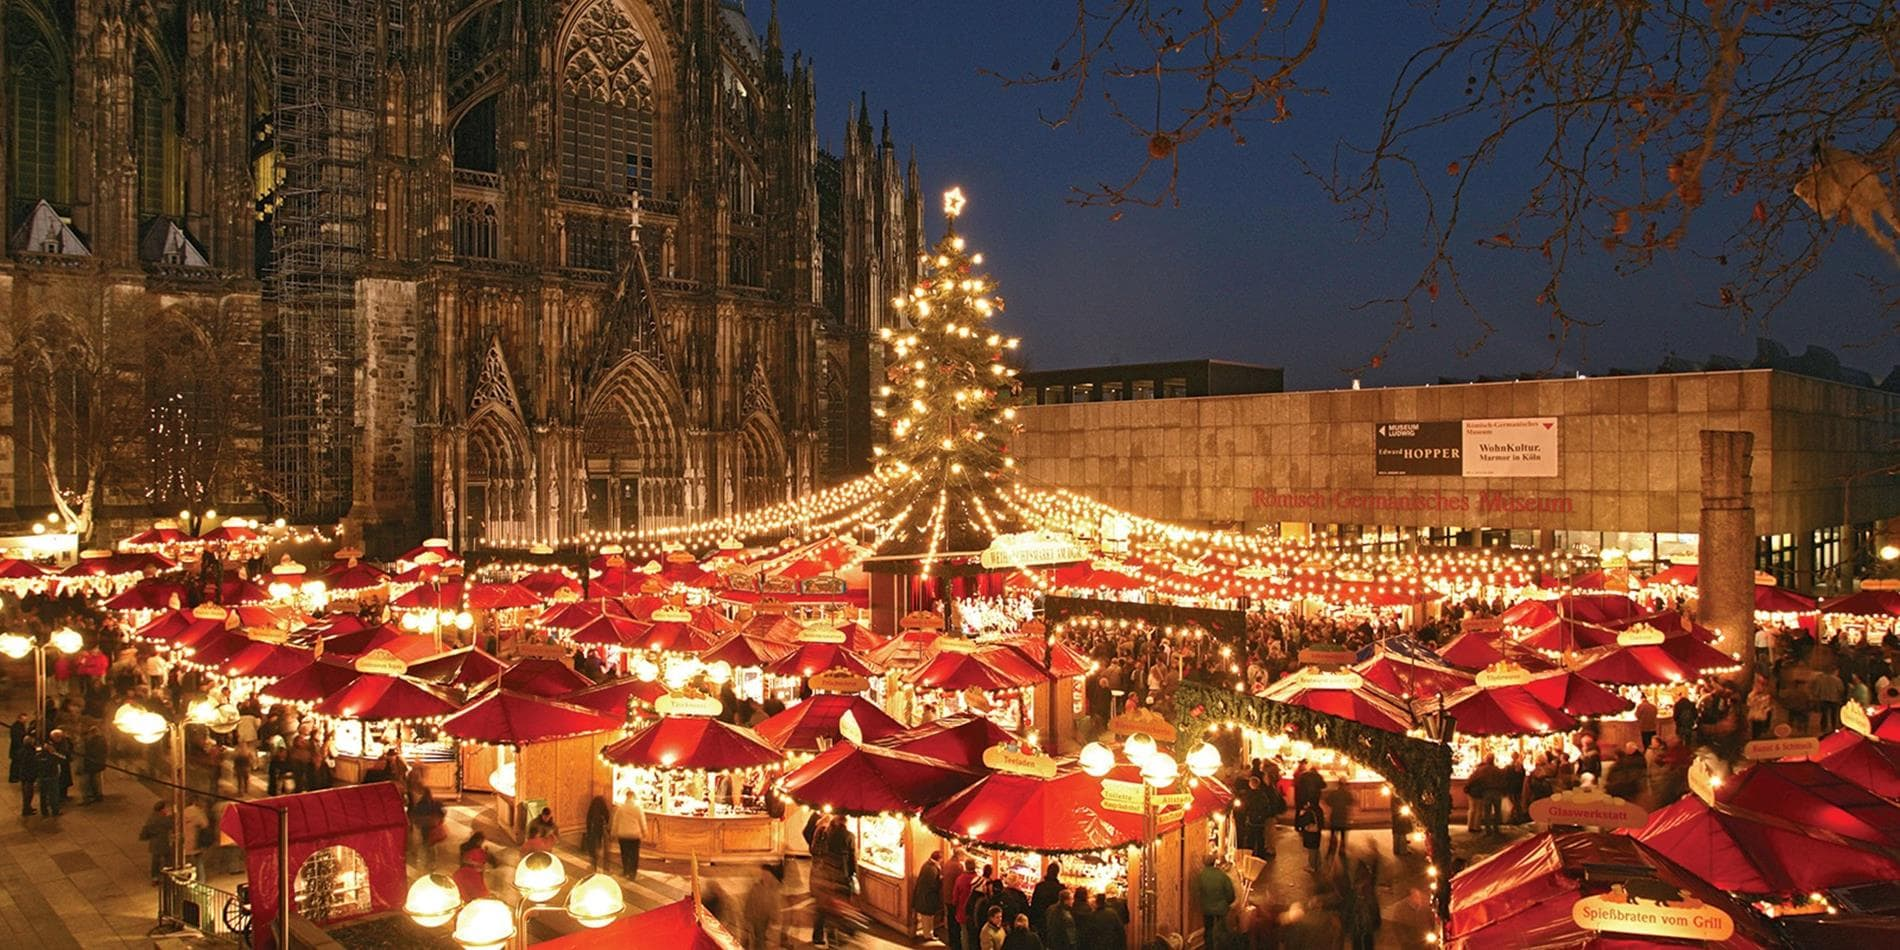 Cologne Christmas Market in front of the Cologne Cathedral